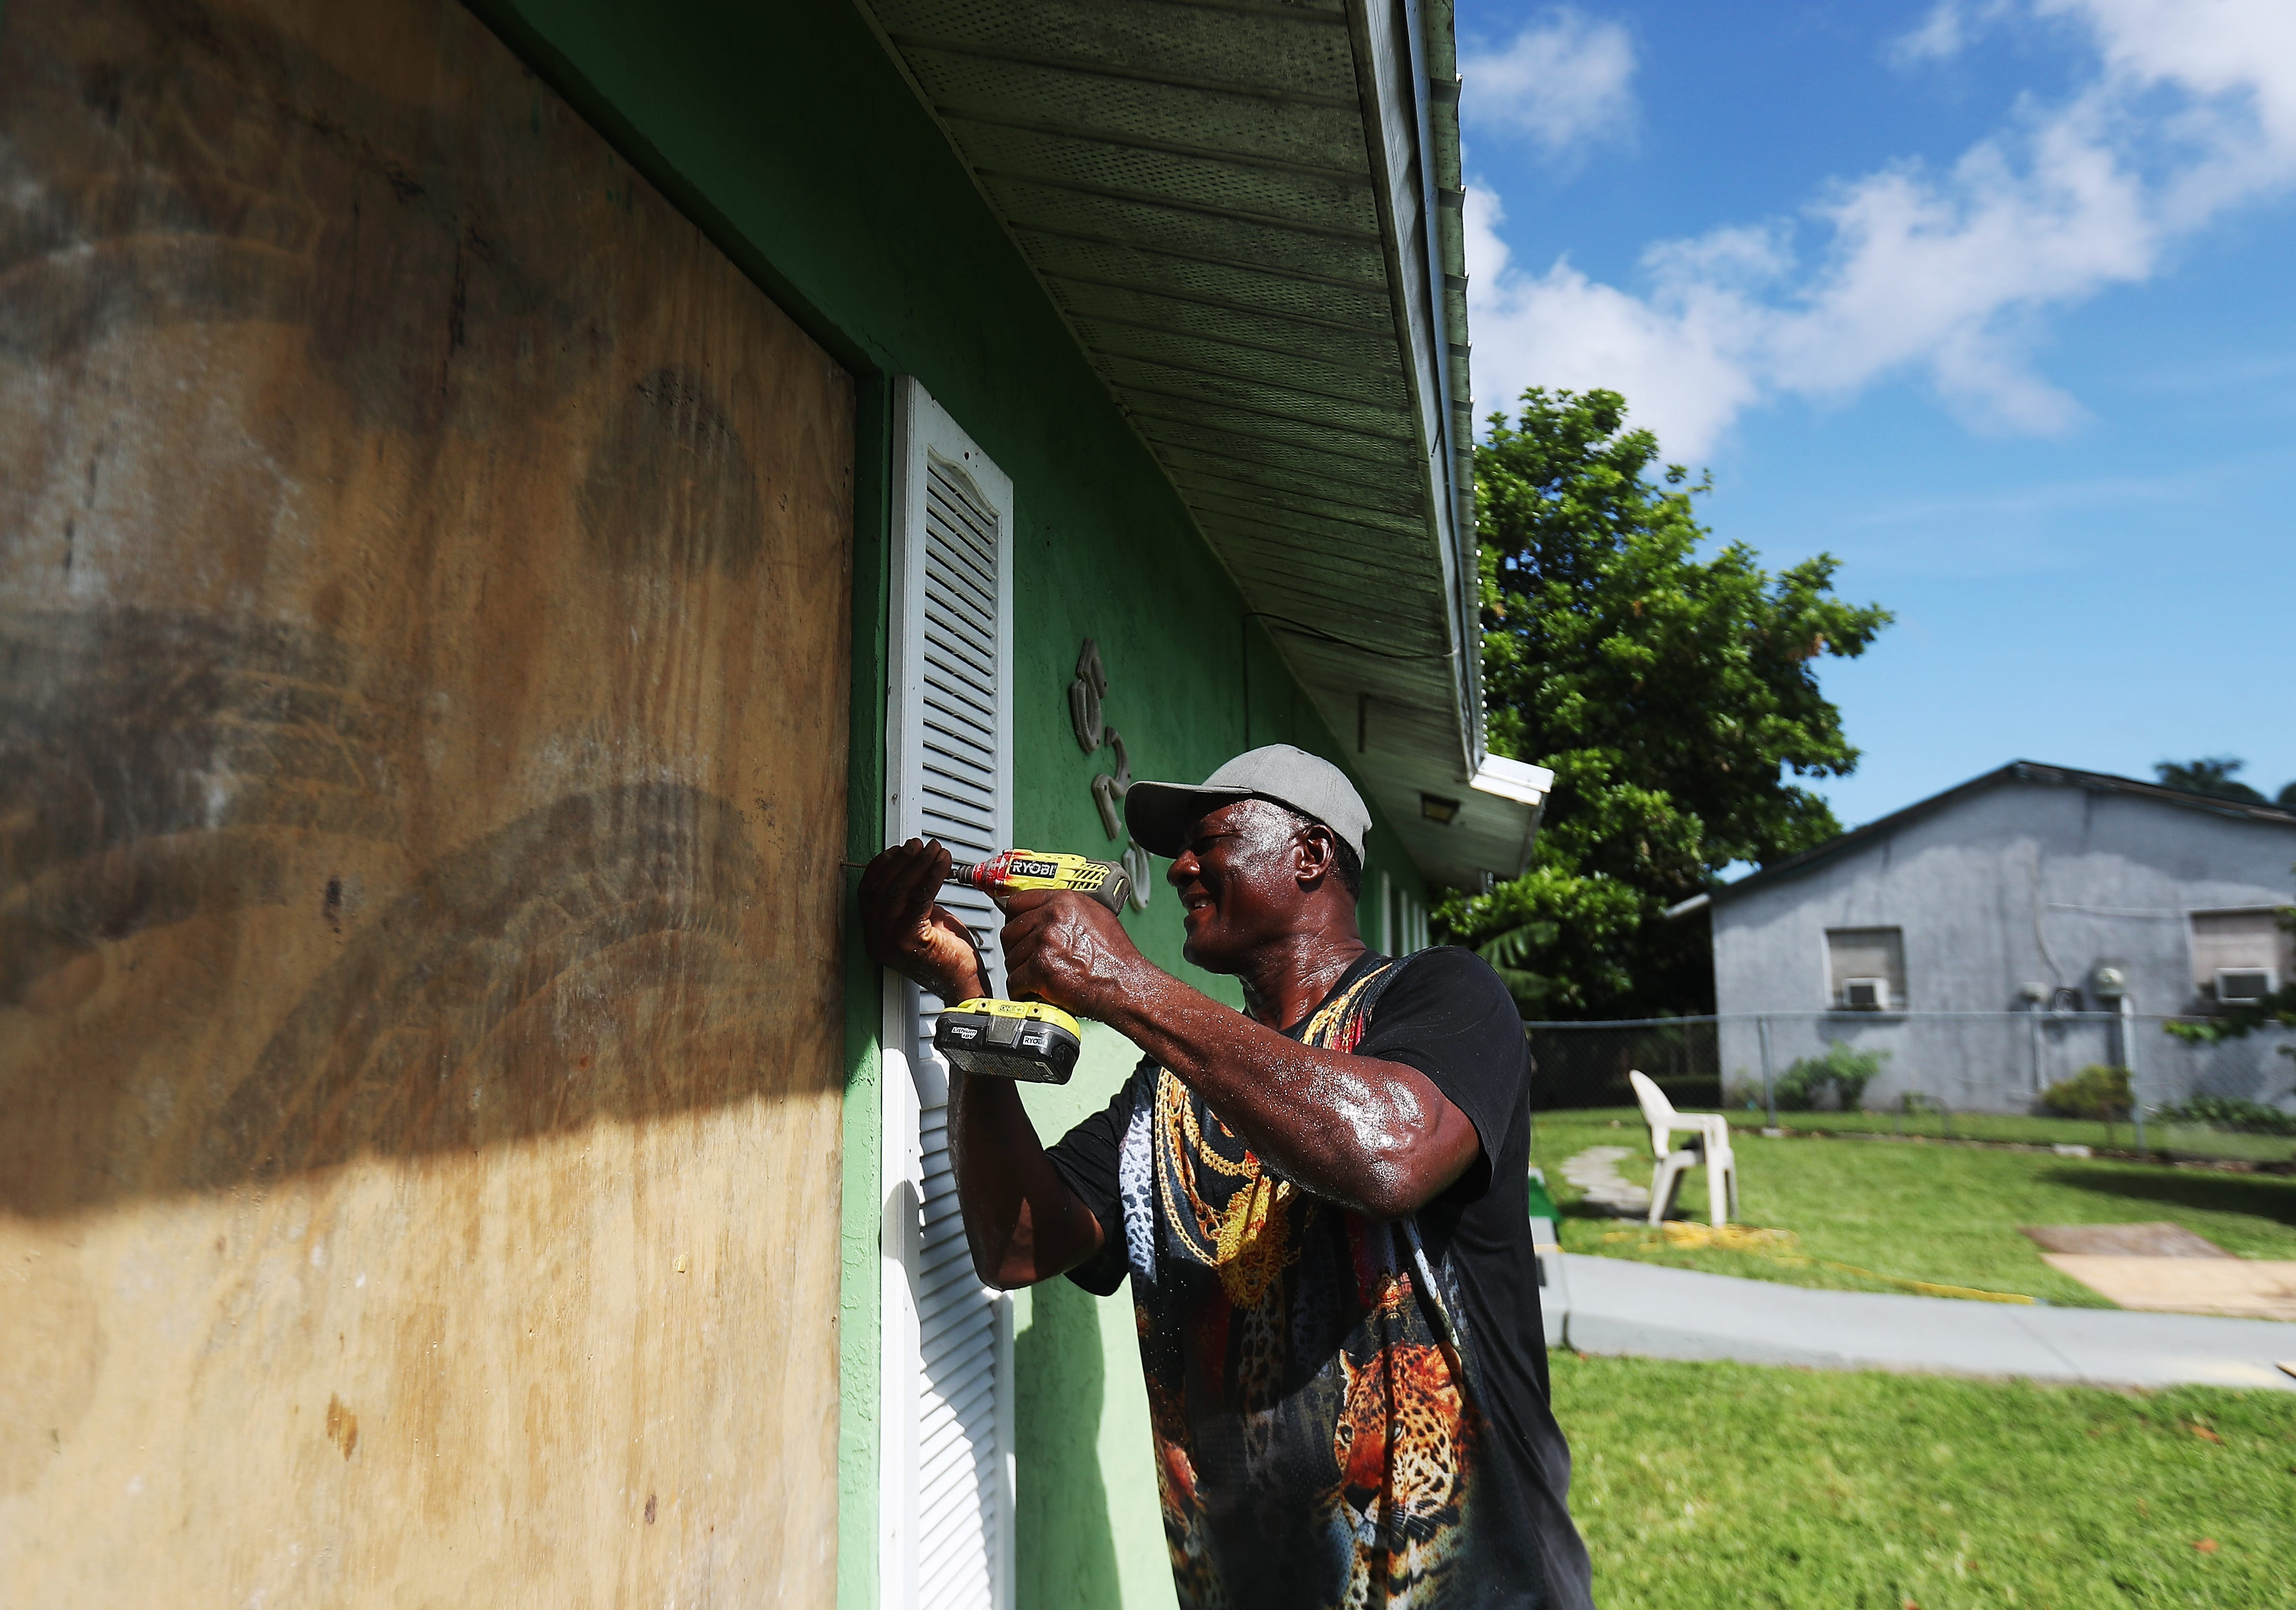 Hurricane Dorian will likely make affordable housing crisis even worse